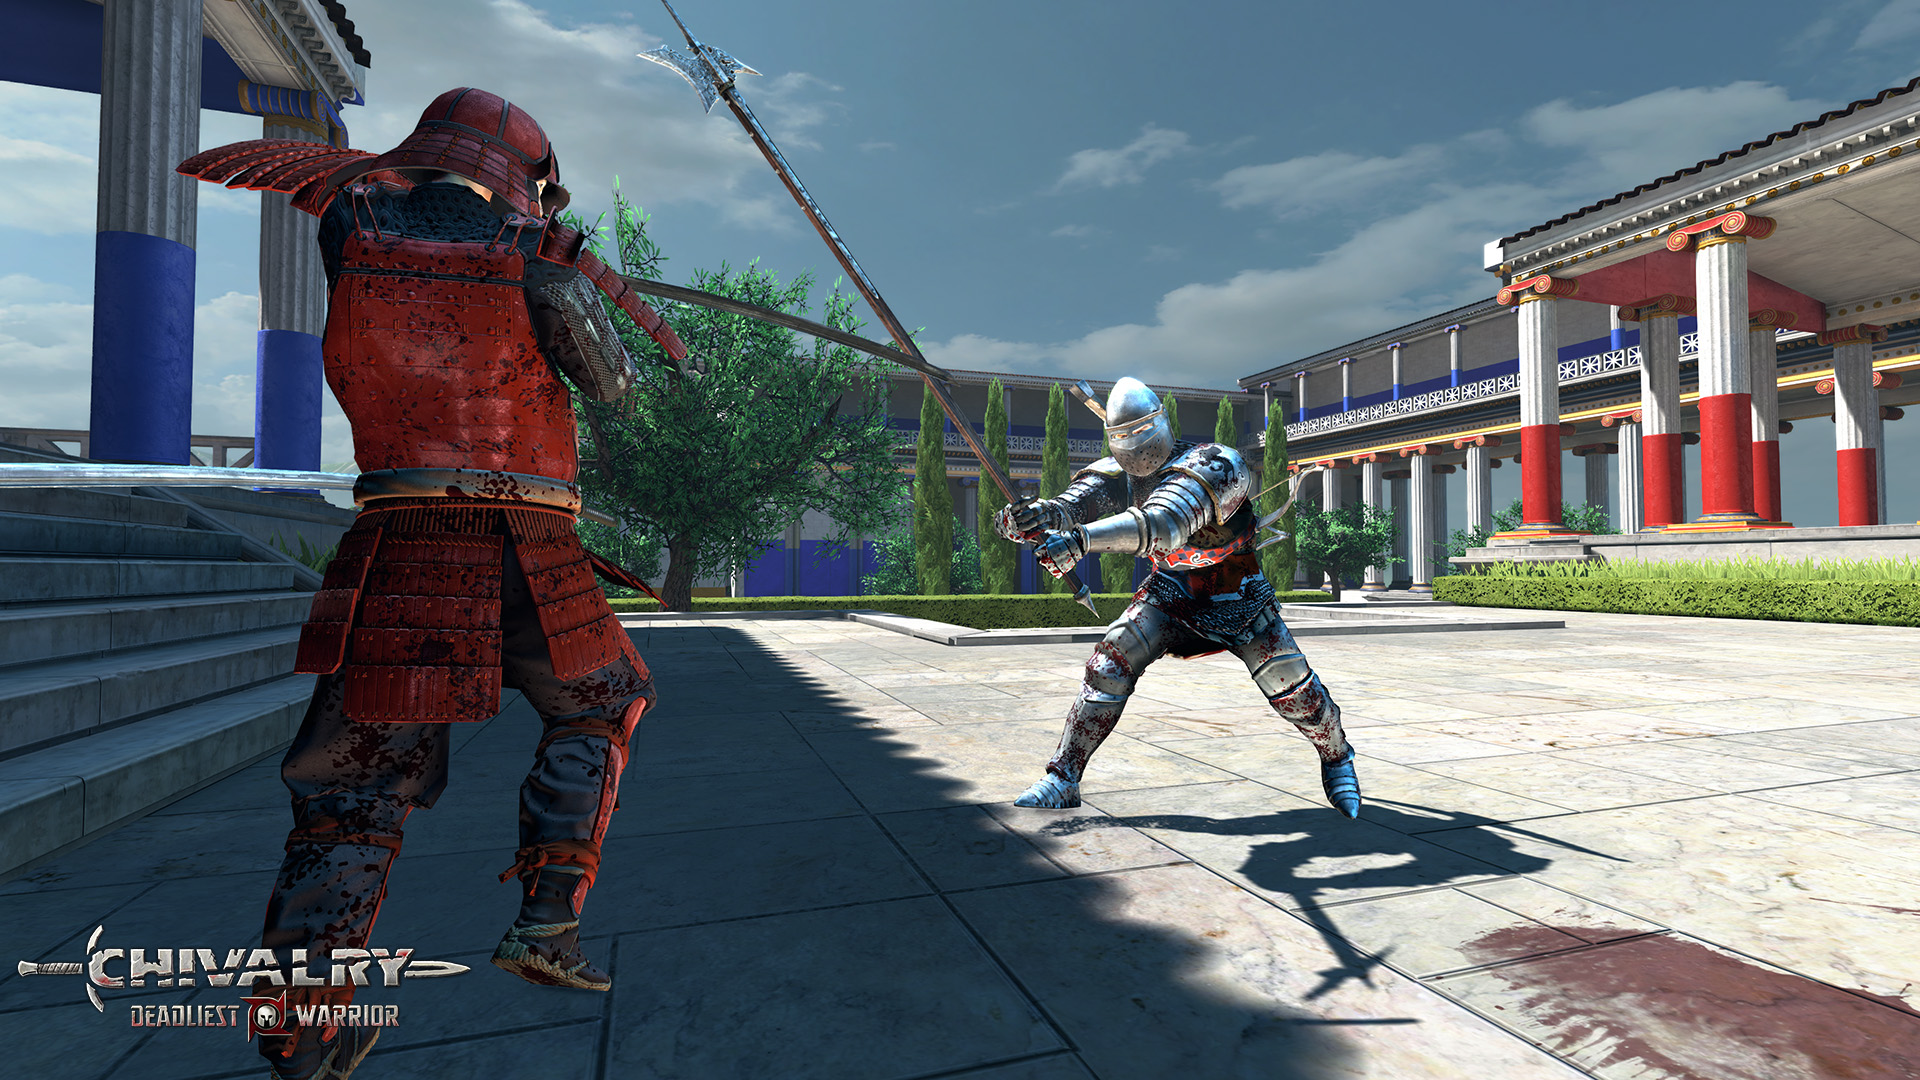 Chivalry-Deadliest-Warrior-Combat-Samurai-and-Knight-1